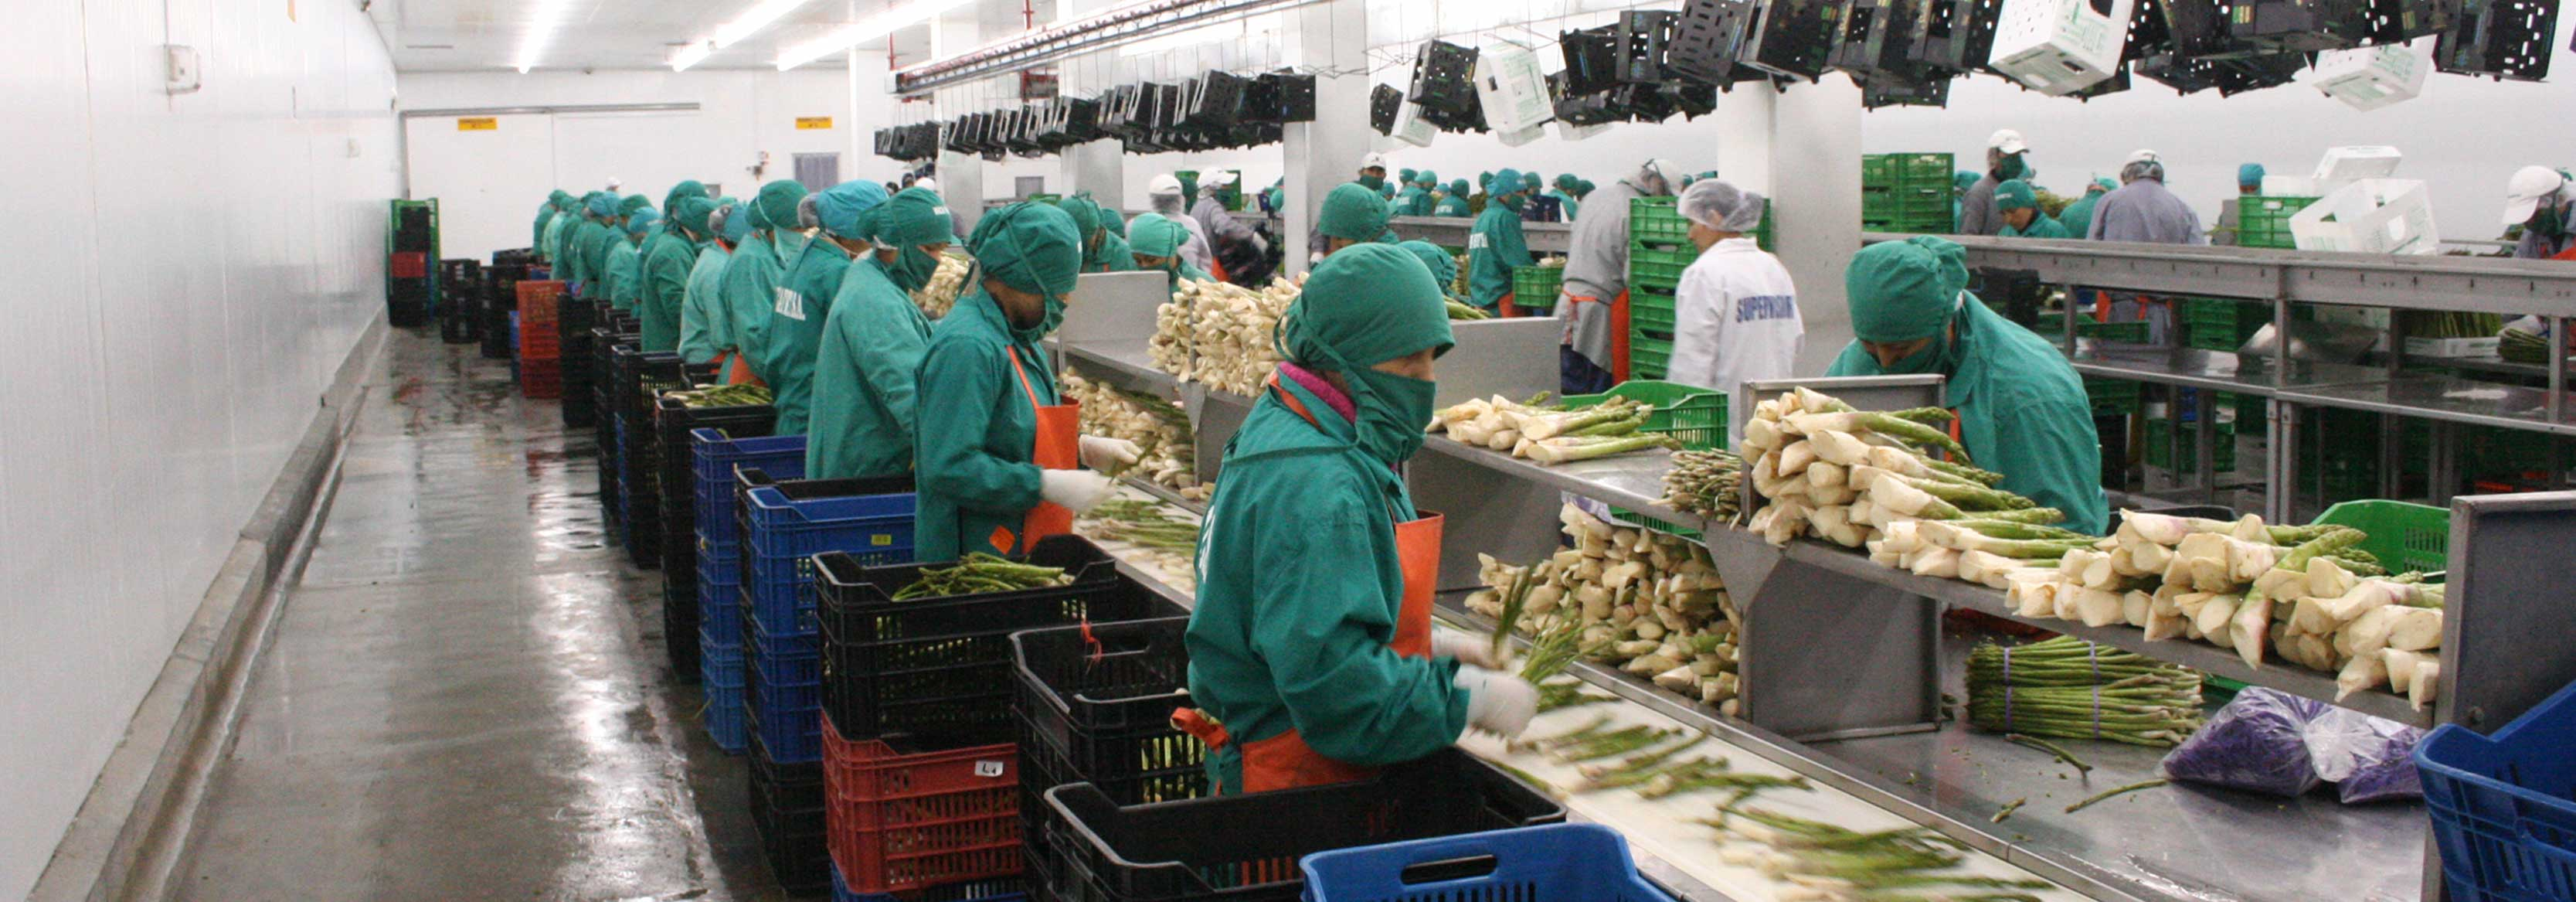 Photograph of Asparagus being processed at the Barfoots Nazca farm in Peru